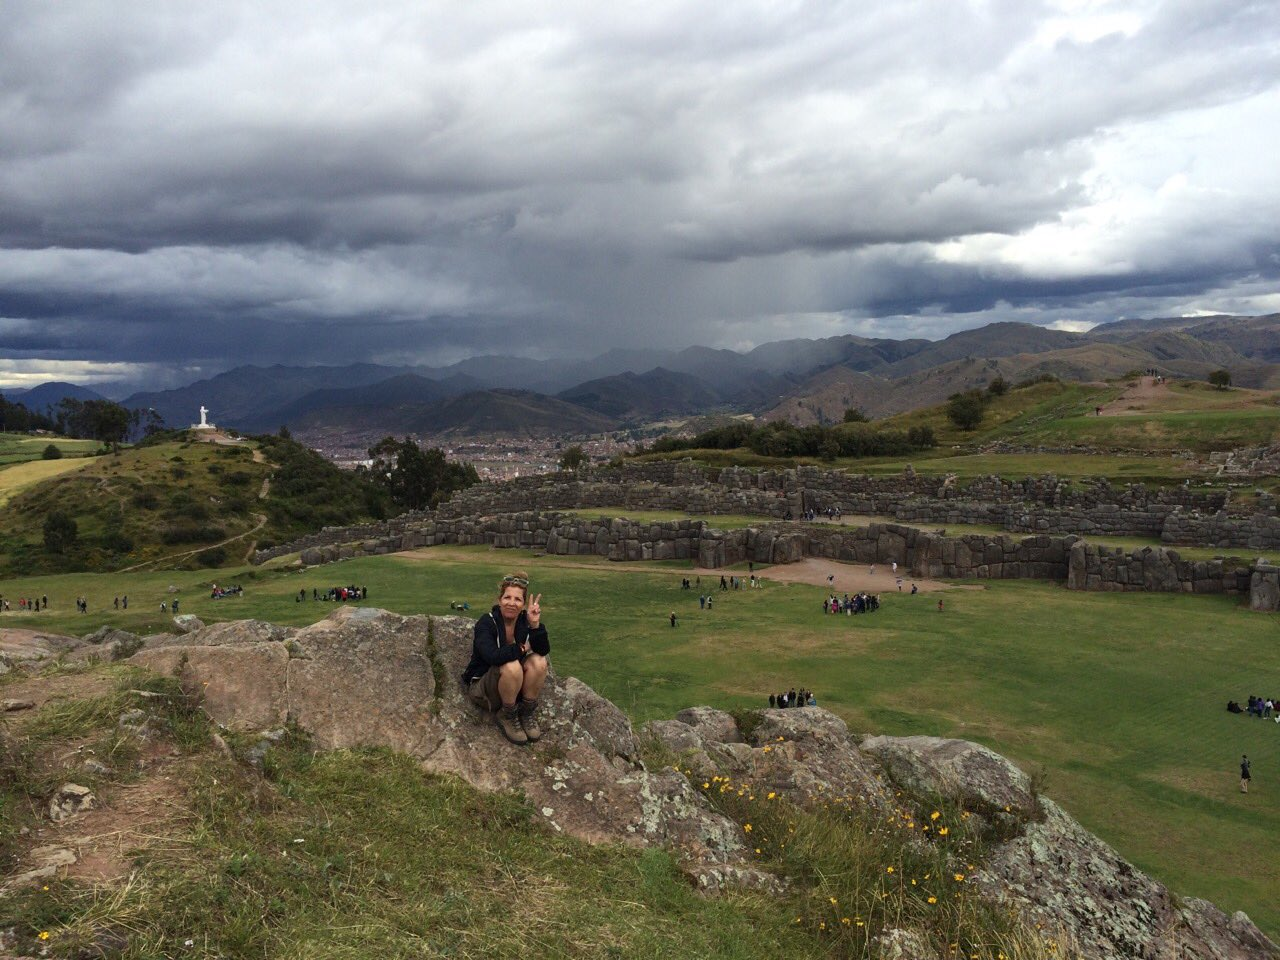 Betty at Saqsaywaman